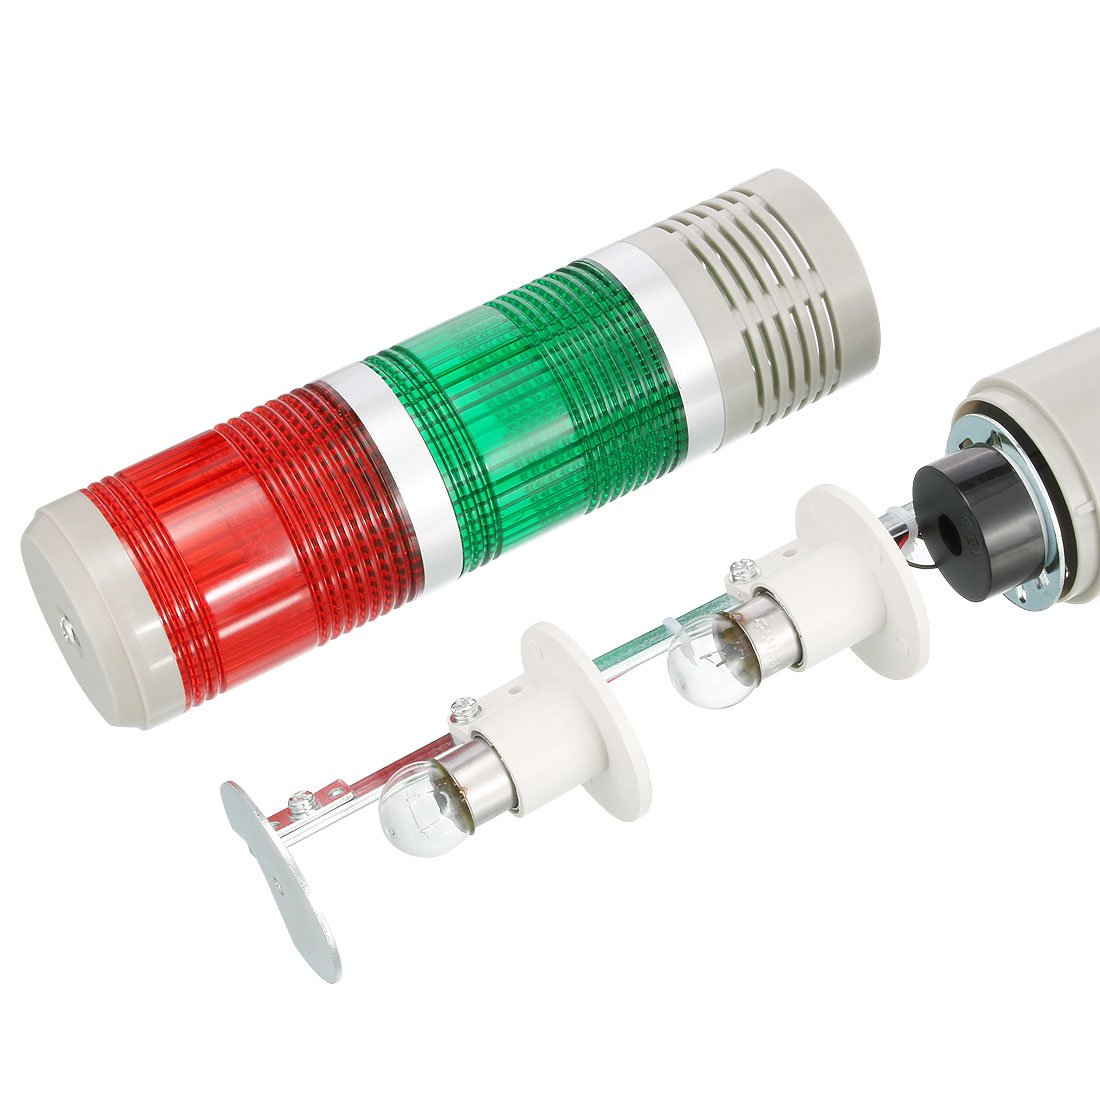 uxcell/® Warning Light Bulb Constant Bright Signal Alarm Tower Light DC 24V 10W Red Green TB50-2T-E